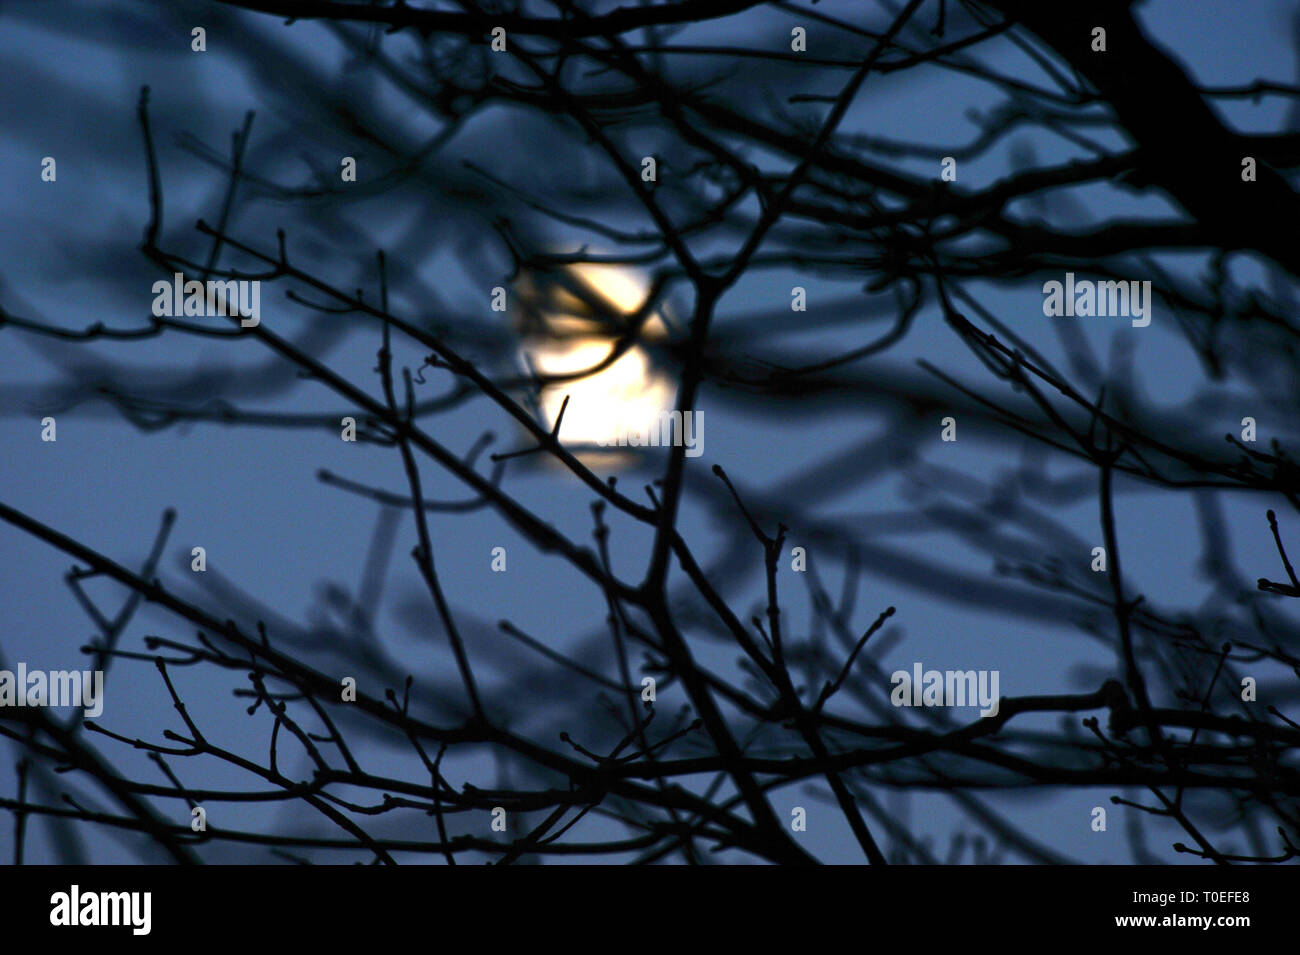 Moonshine  through trees silhouettes A myriad of branches and twigs screens the fading moonlight and blue night sky. - Stock Image